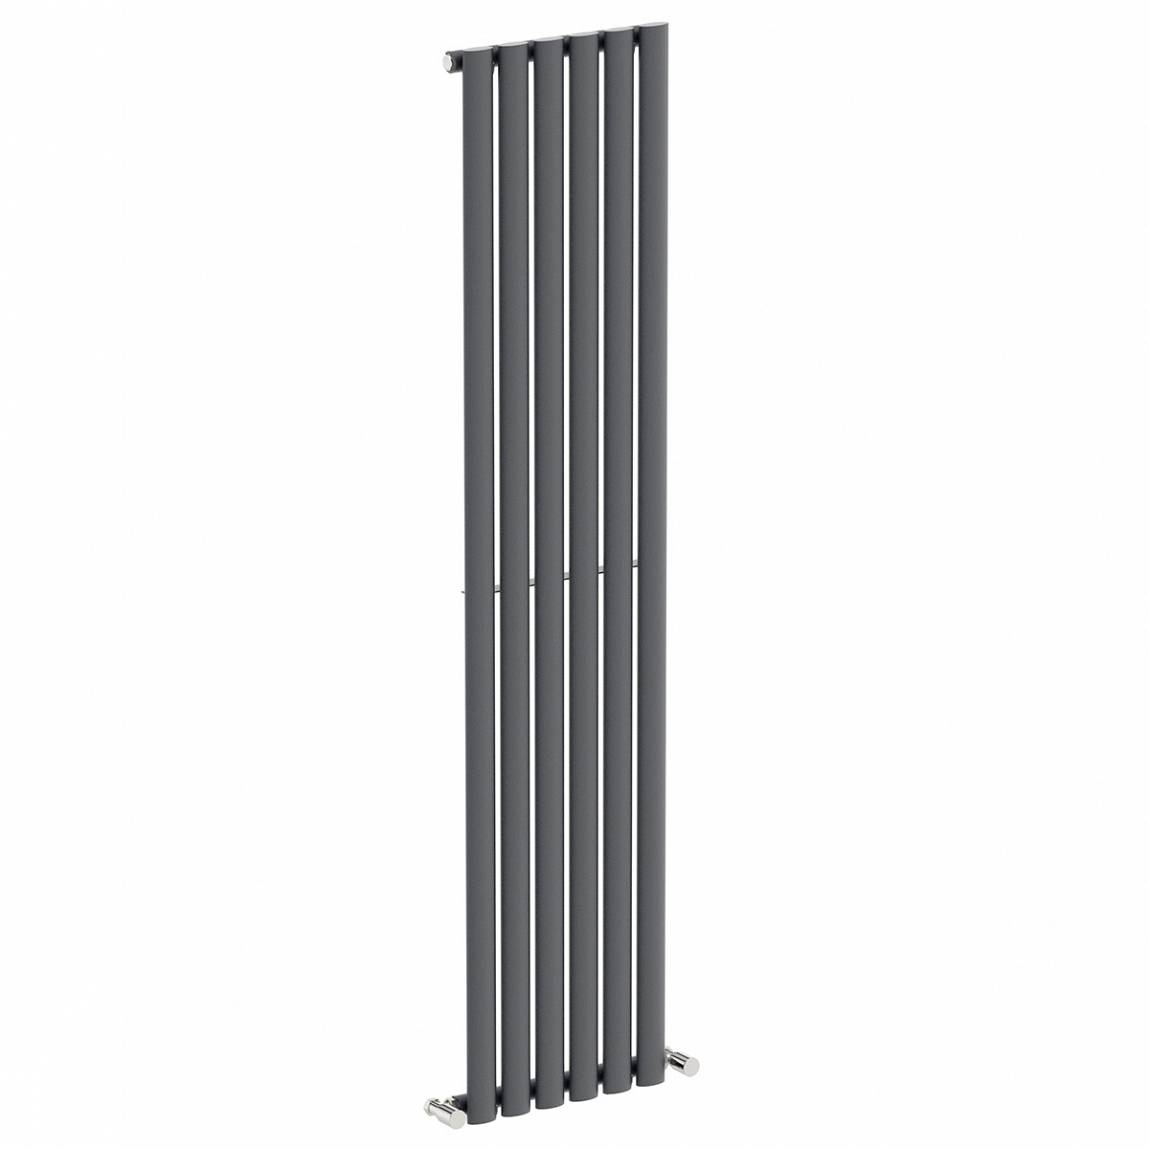 Image of Lava Single Radiator 1600 x 360 Special Offer